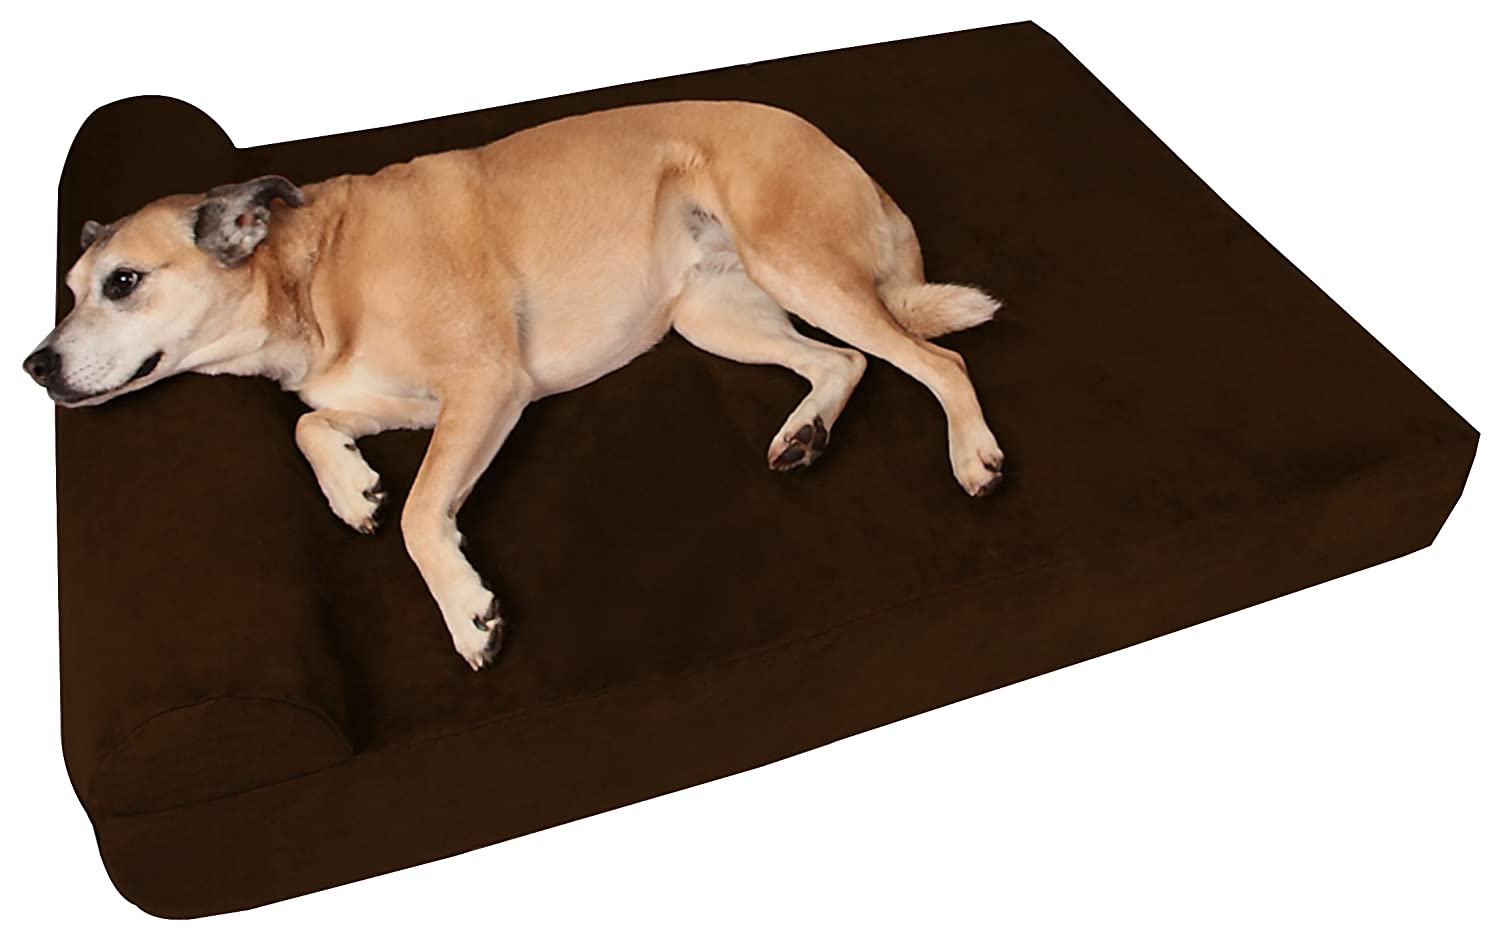 amazoncom big barker 7inch pillow top orthopedic large 48 x 30 x 7inch bed for dogs chocolate pet beds pet supplies - Dog Beds For Large Dogs